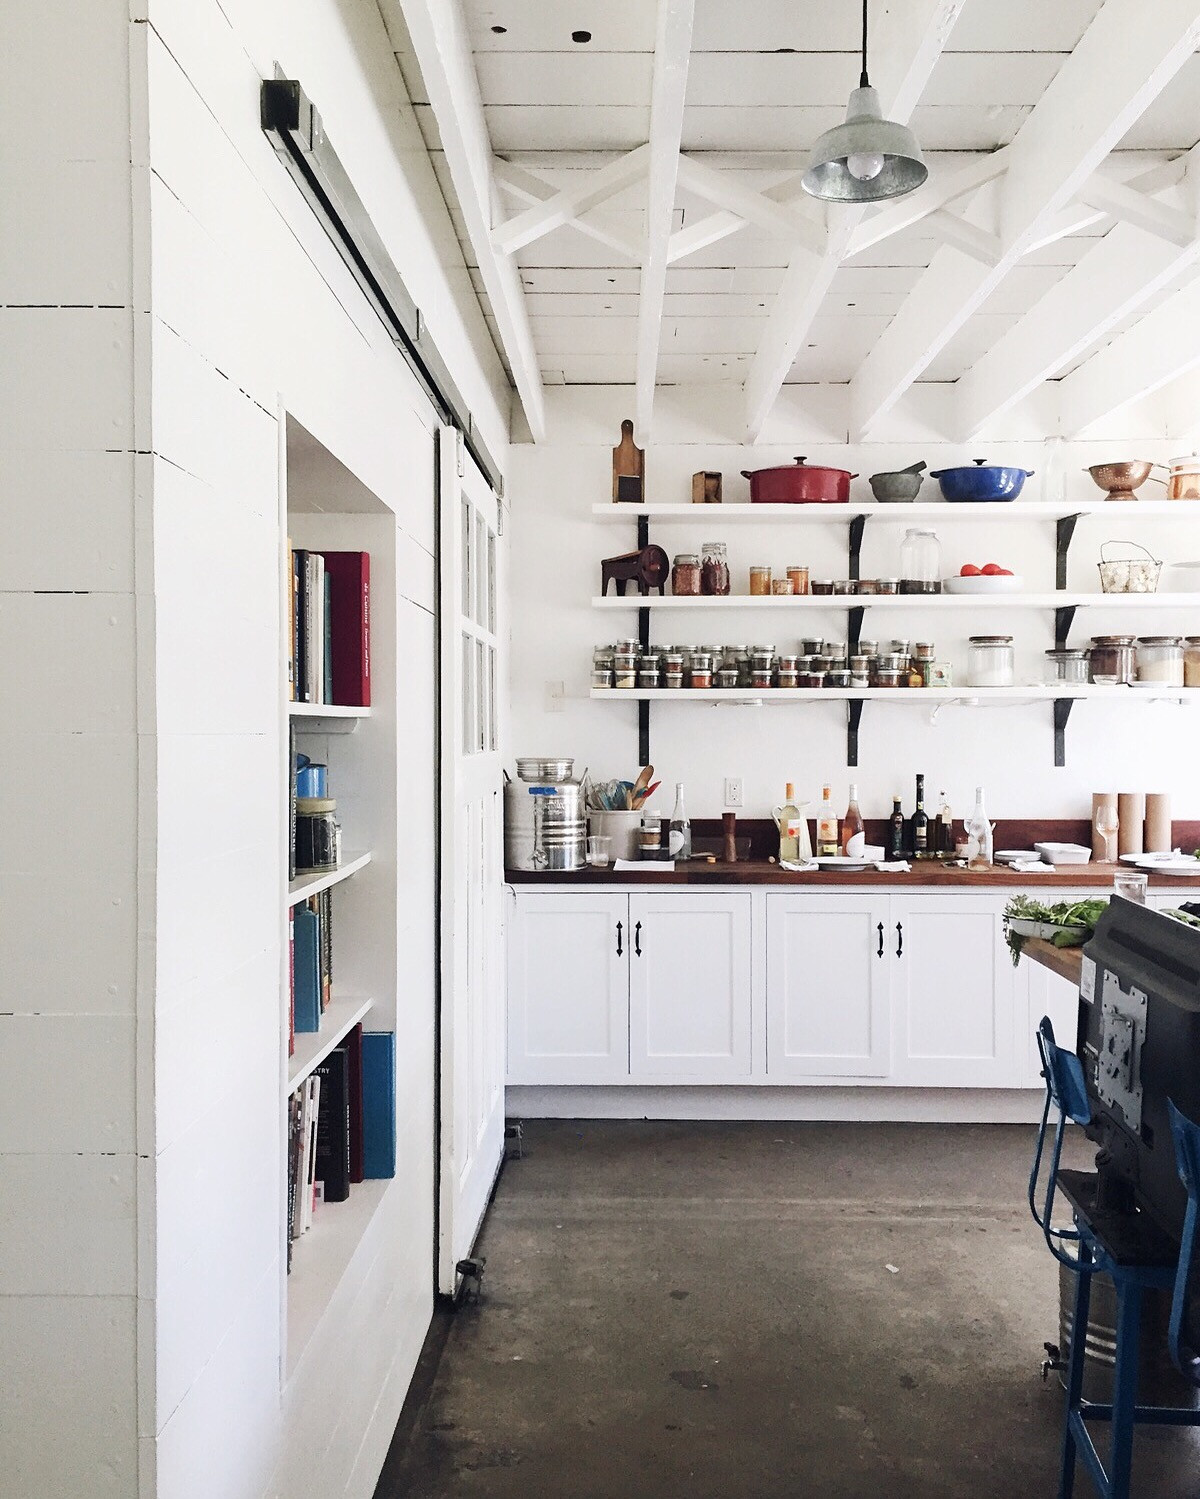 Best ideas about The Pantry Seattle . Save or Pin The Pantry Seattle Selina S Lee Now.